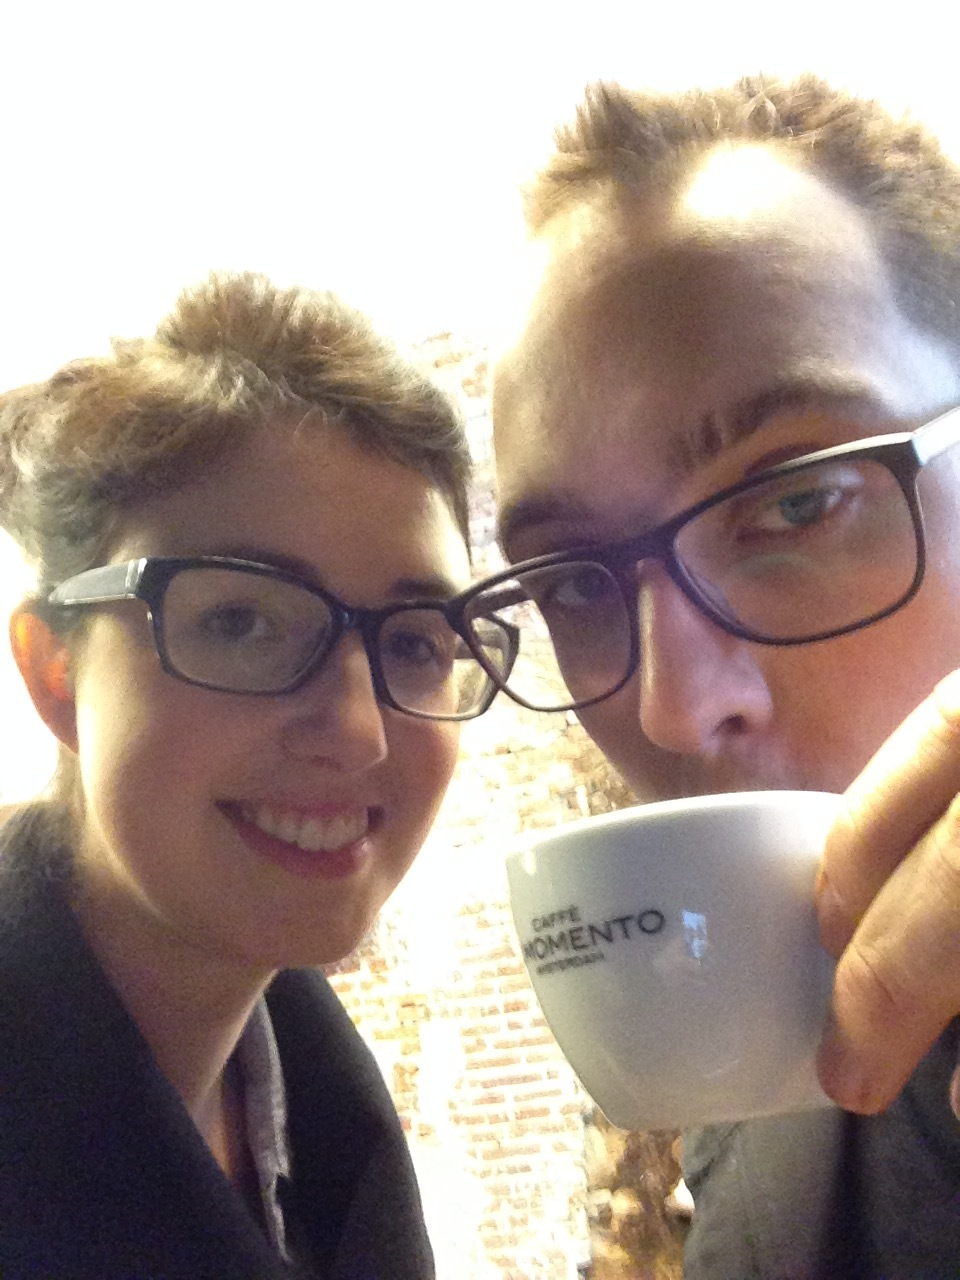 Us in Amsterdam, having coffee and looking like hipsters.